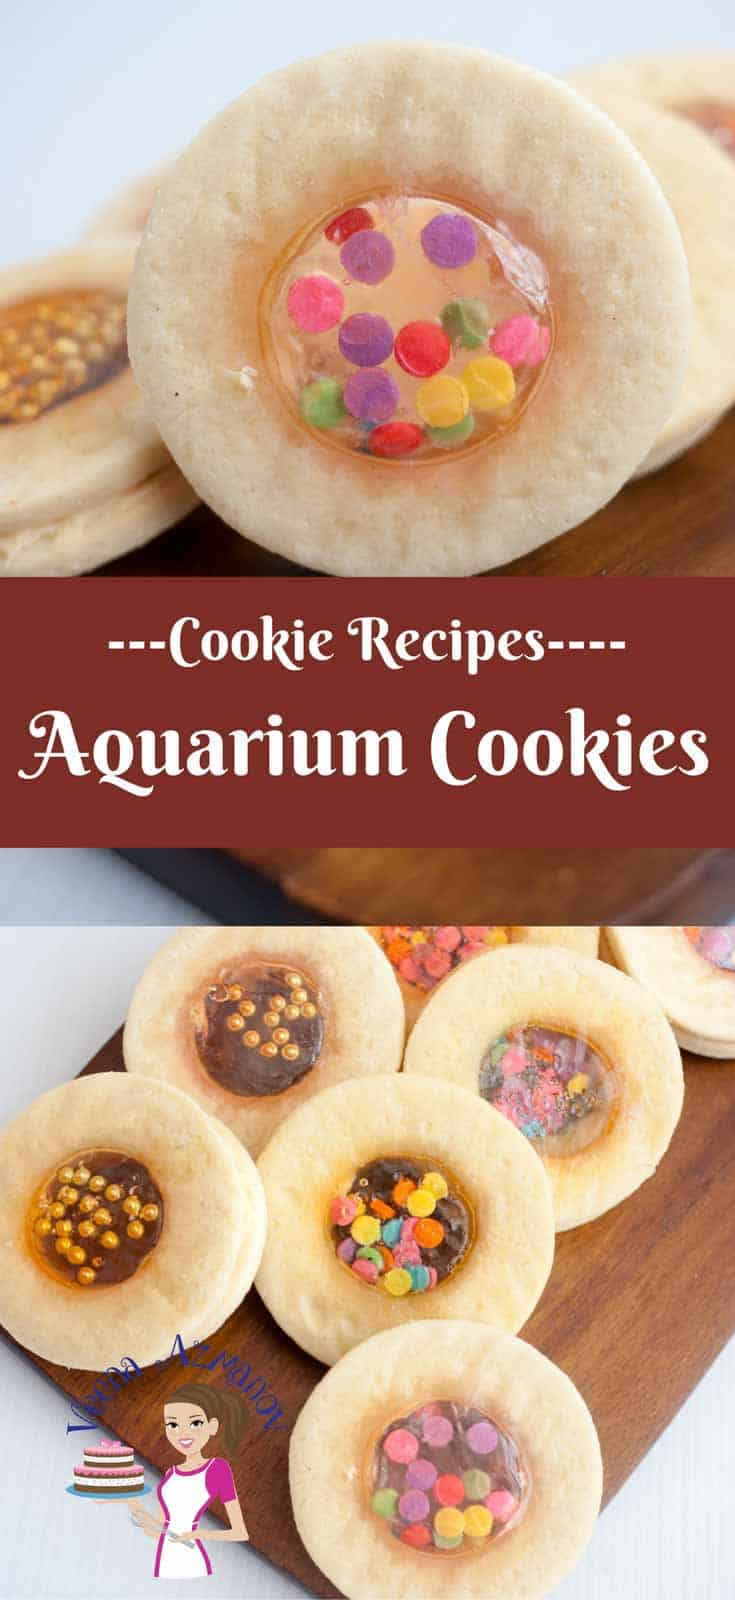 Aquarium cookies on a wooden board.